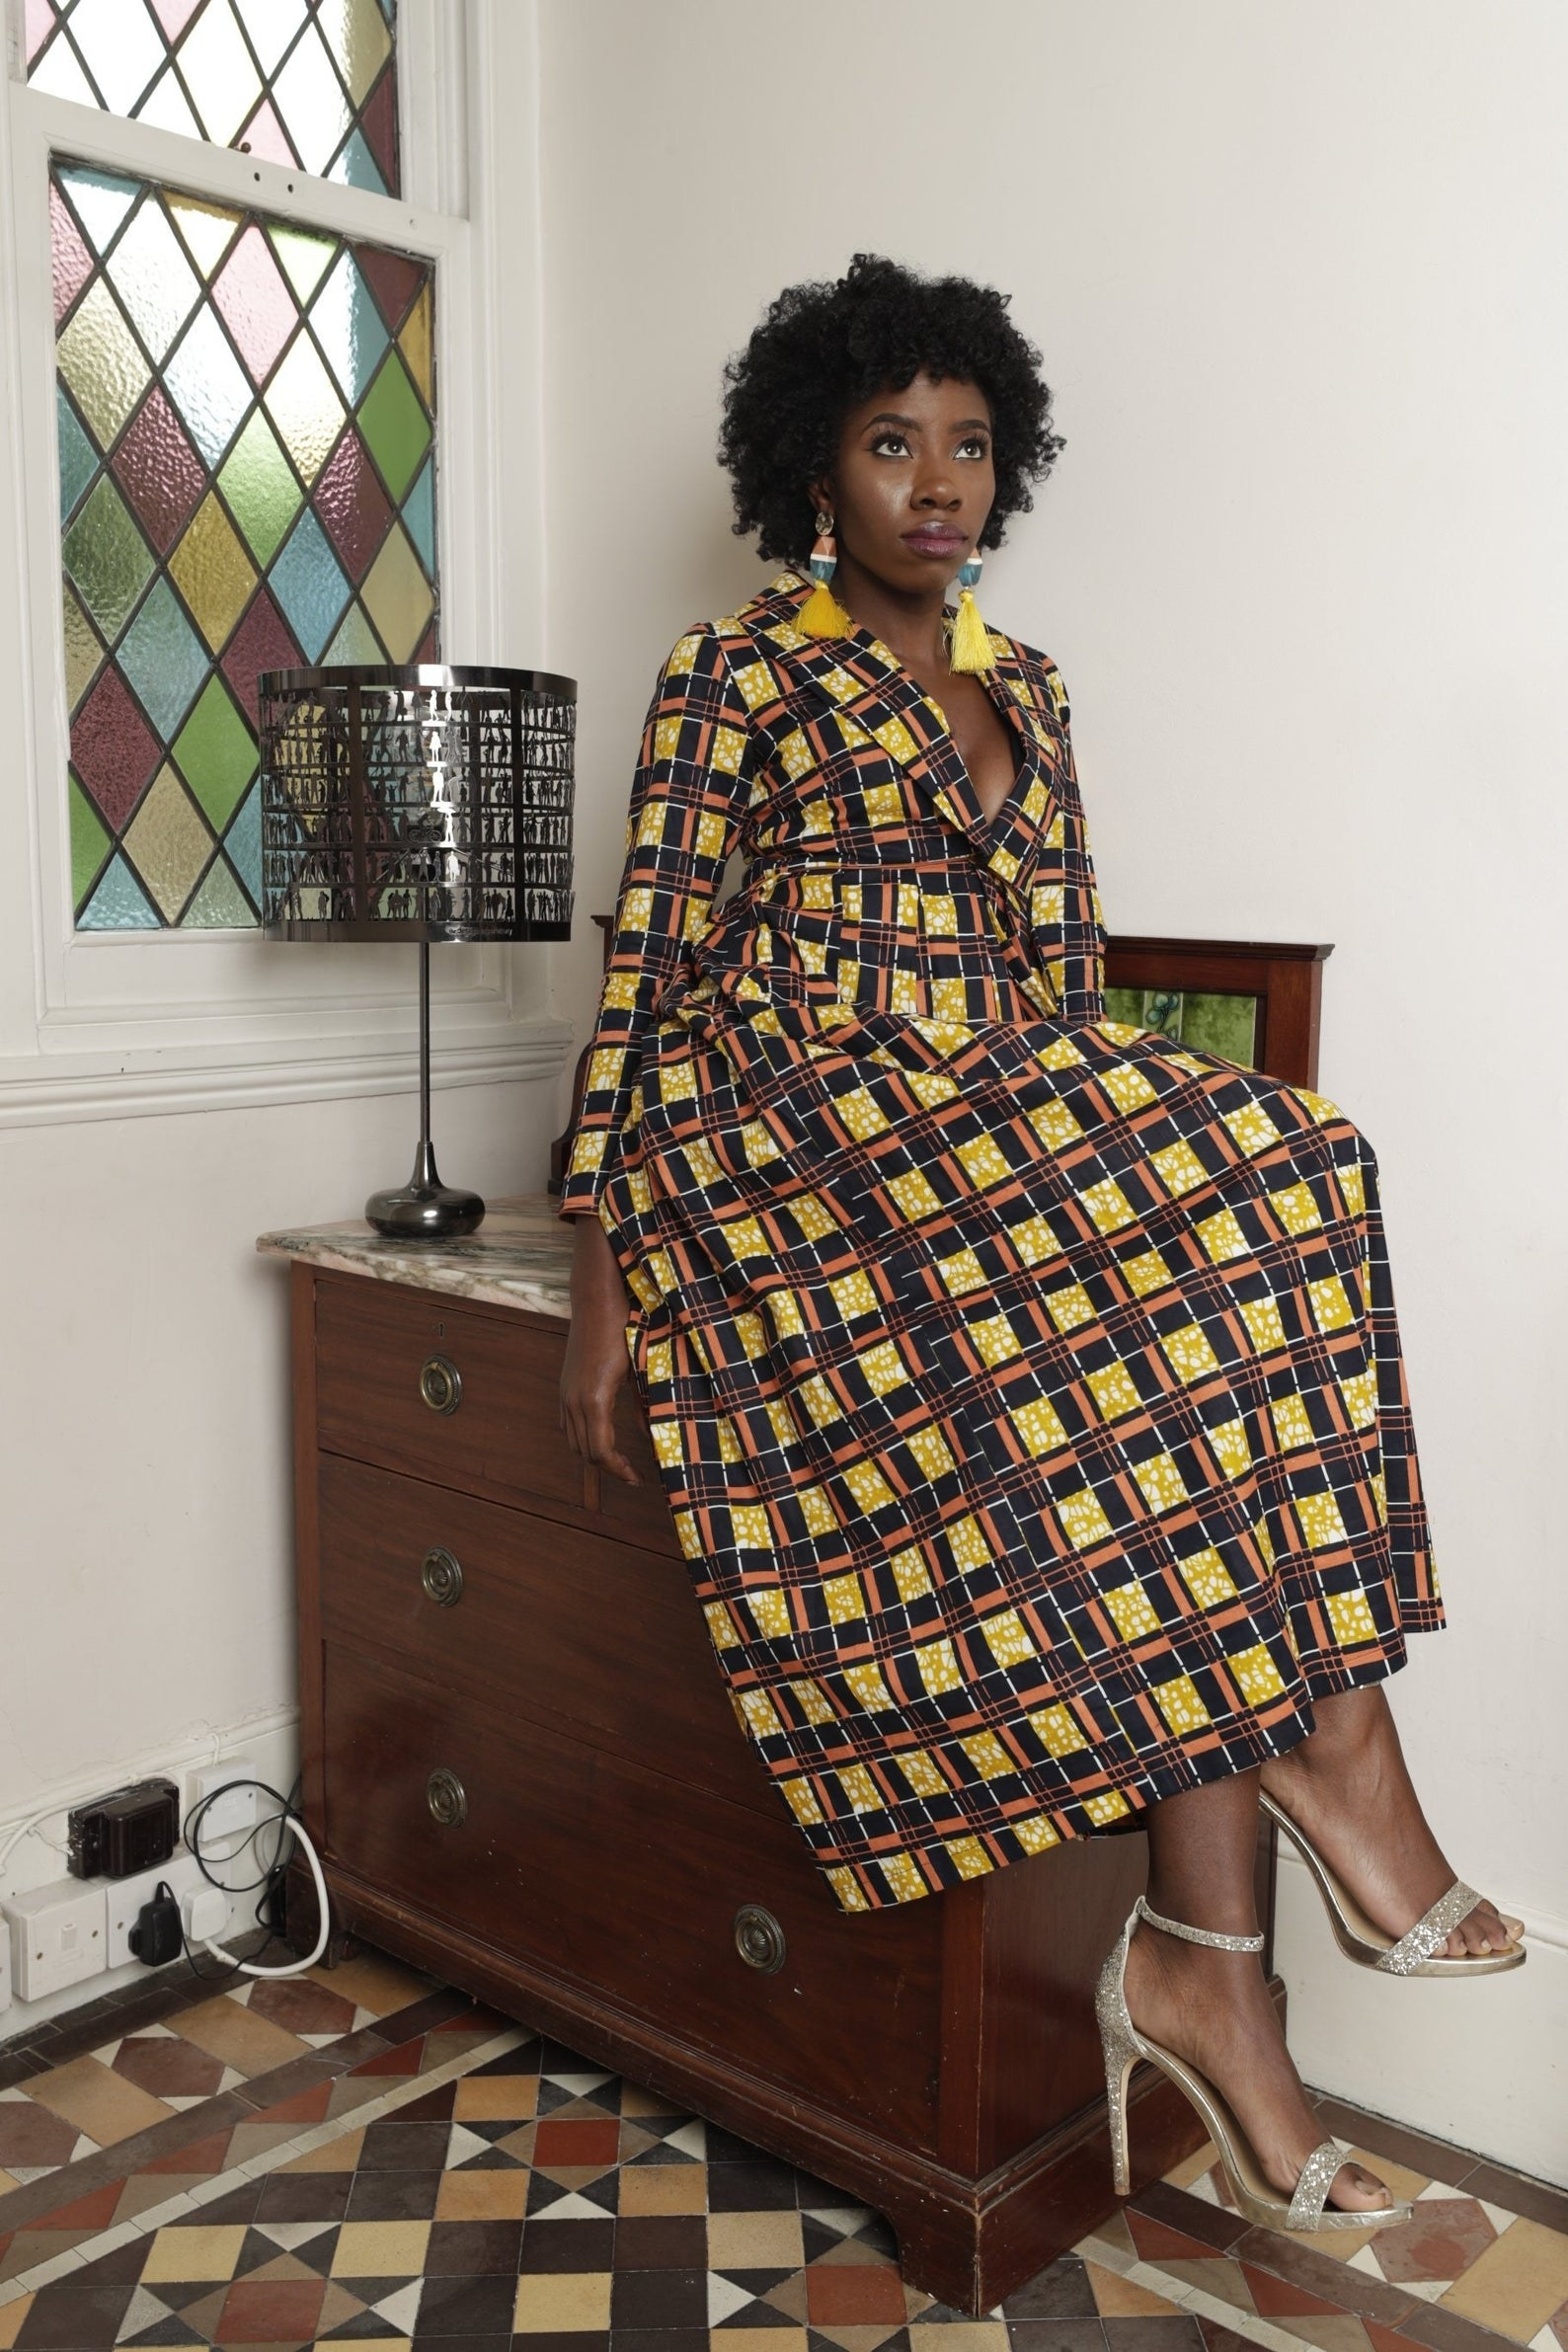 Model in a maxi dress with long sleeves in a yellow, navy, and orange African print